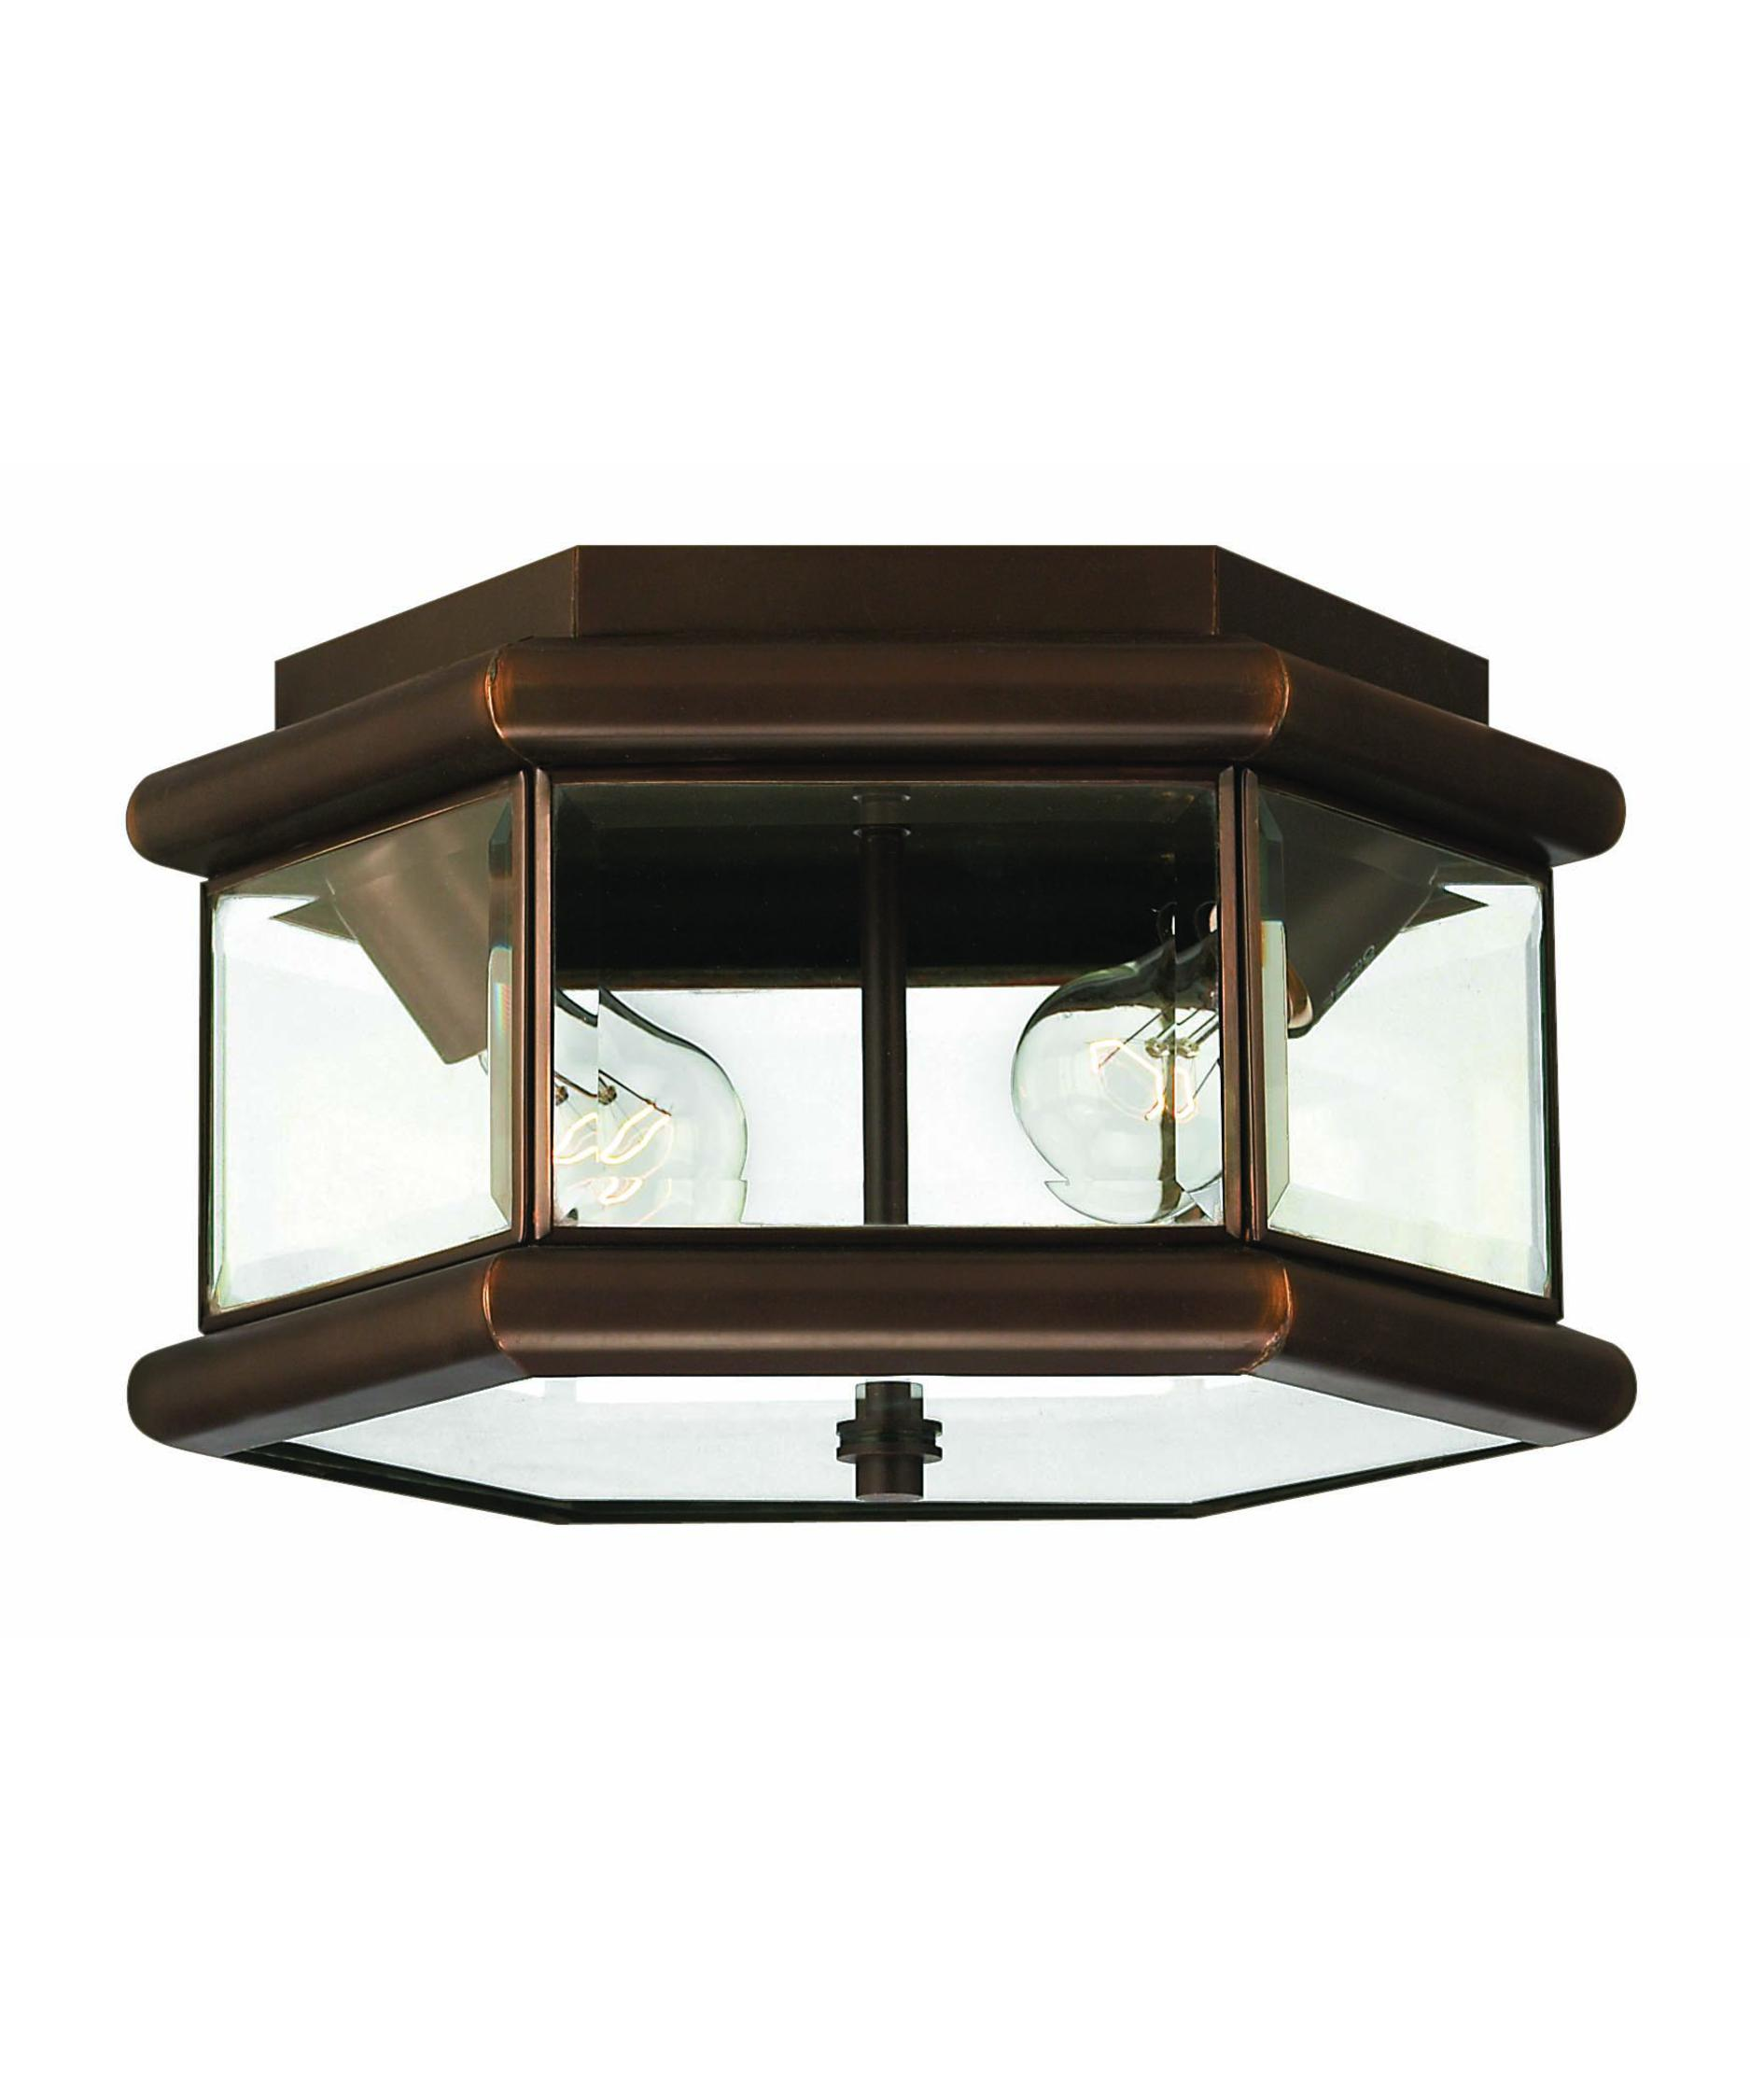 Flush mount outdoor lighting - Shown In Copper Bronze Finish And Beveled Clear Glass